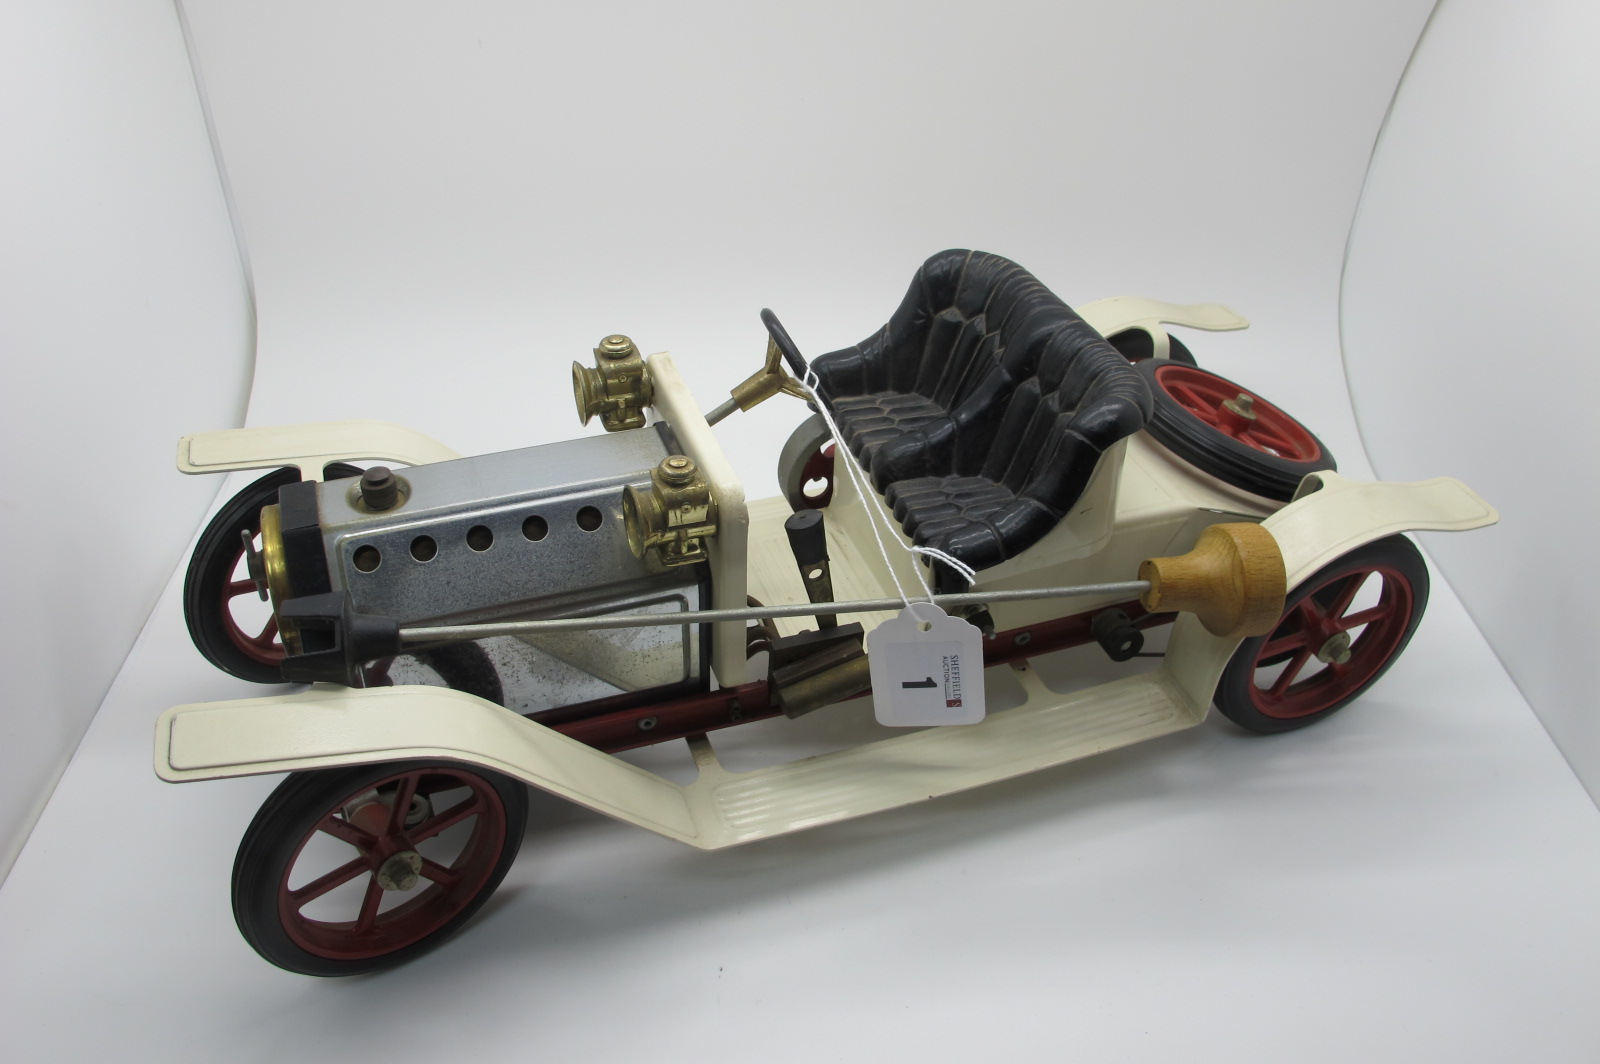 A Mamod Steam Car, appears complete including burnel and steering rod, appears unsteamed, unboxed.